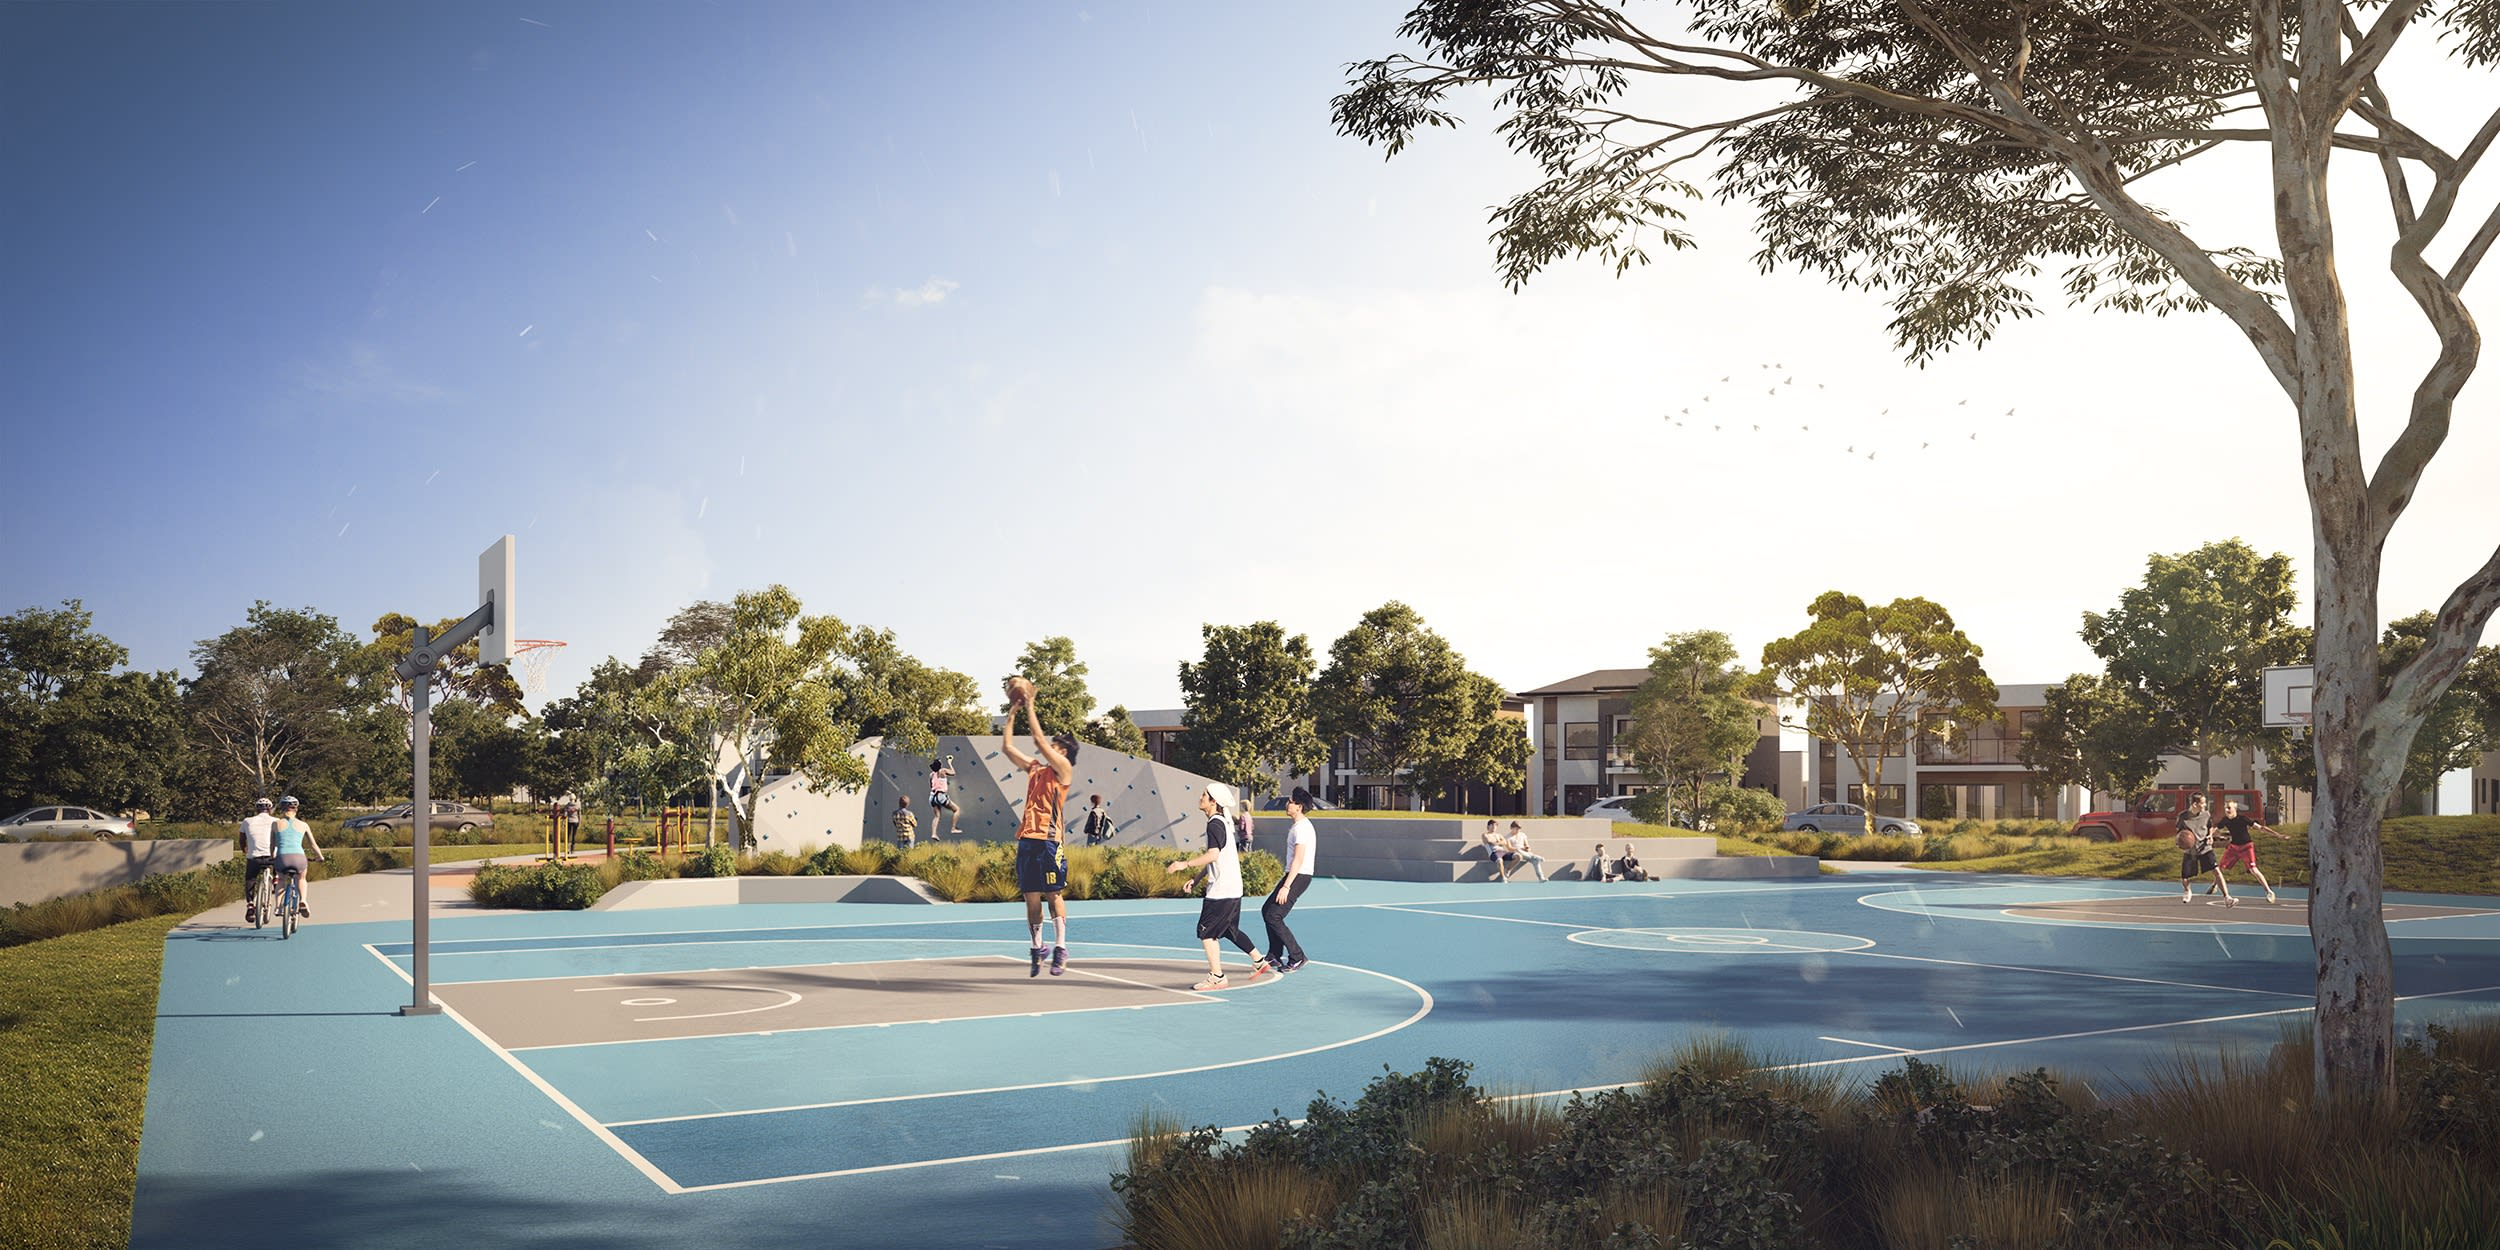 Mirvac has gone above and beyond to deliver world-class amenities for Waverley Park residents – here's the full list